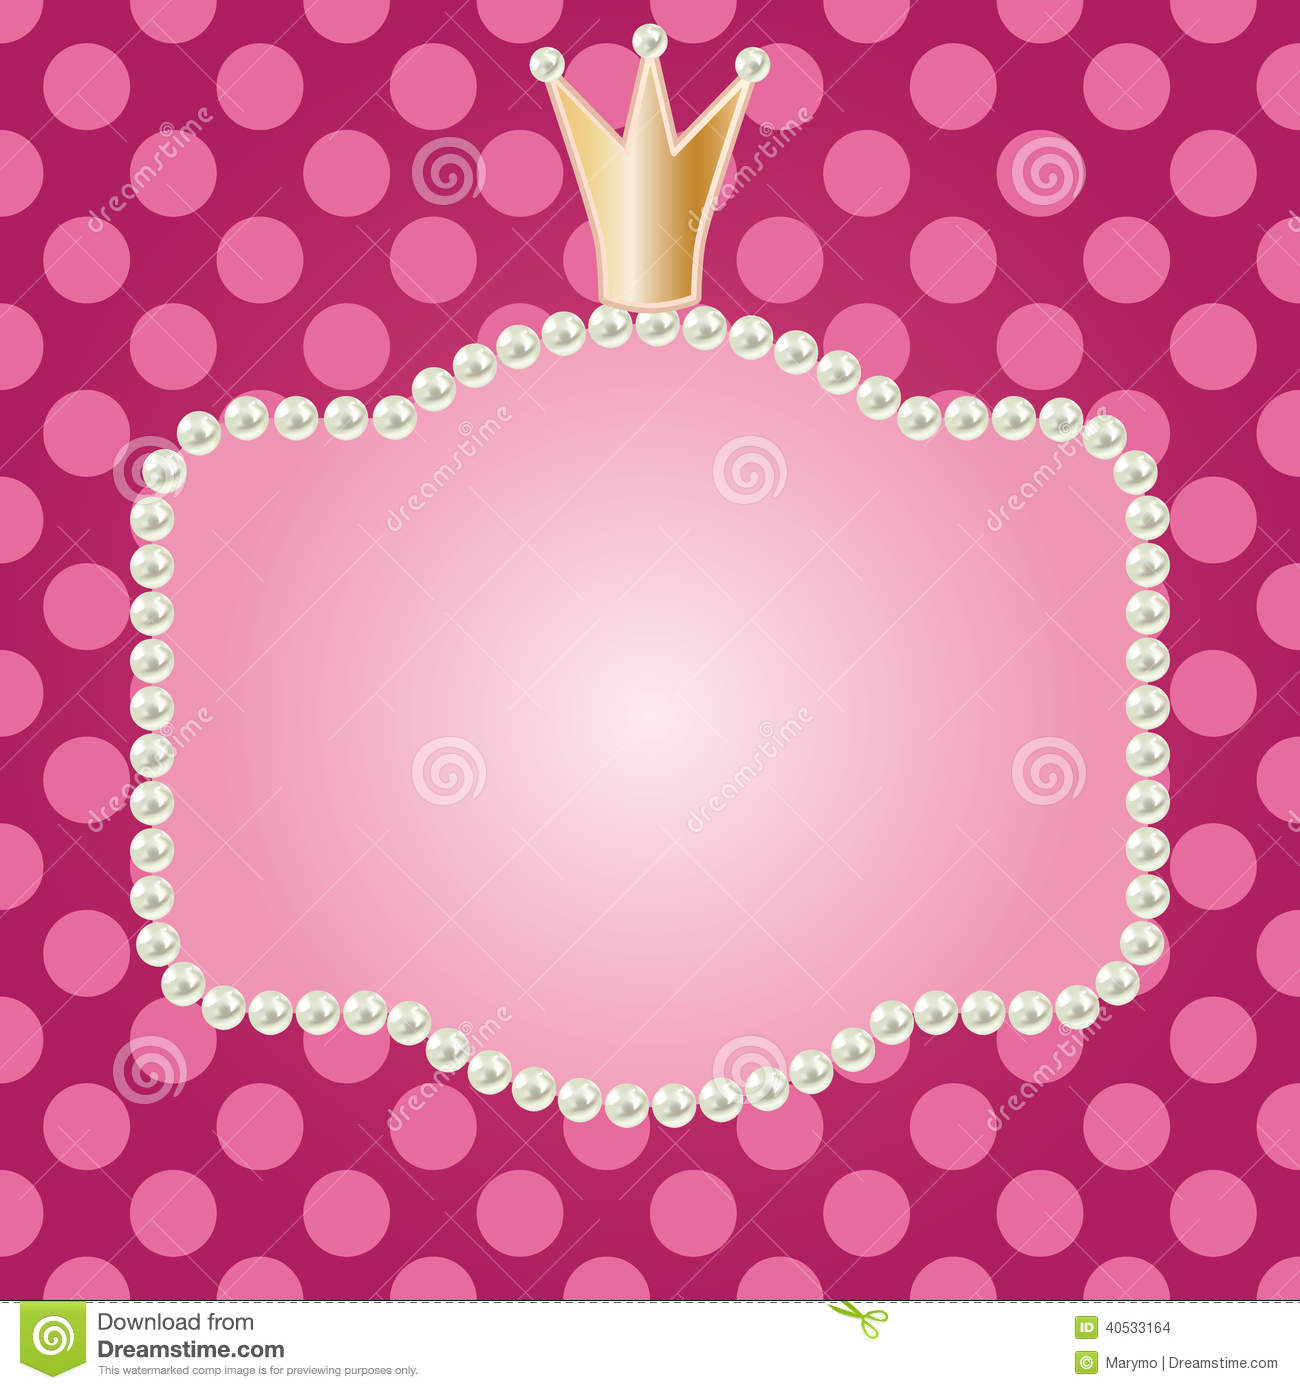 id facebook sinab pearl media princess nabramos pearls by